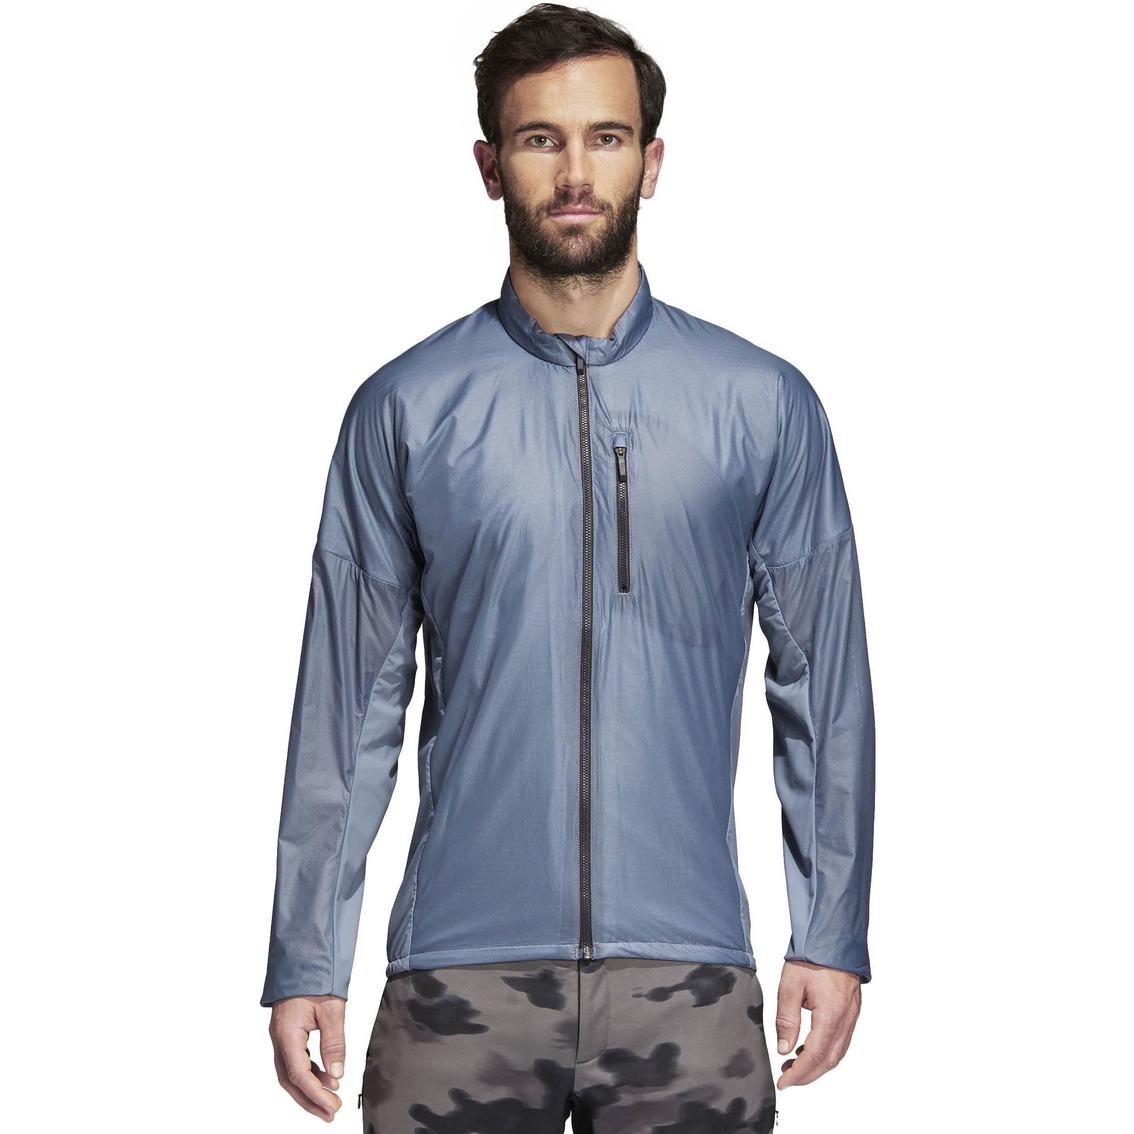 Adidas Outdoor Agravic Alpha Shield Jacket | Jackets ...